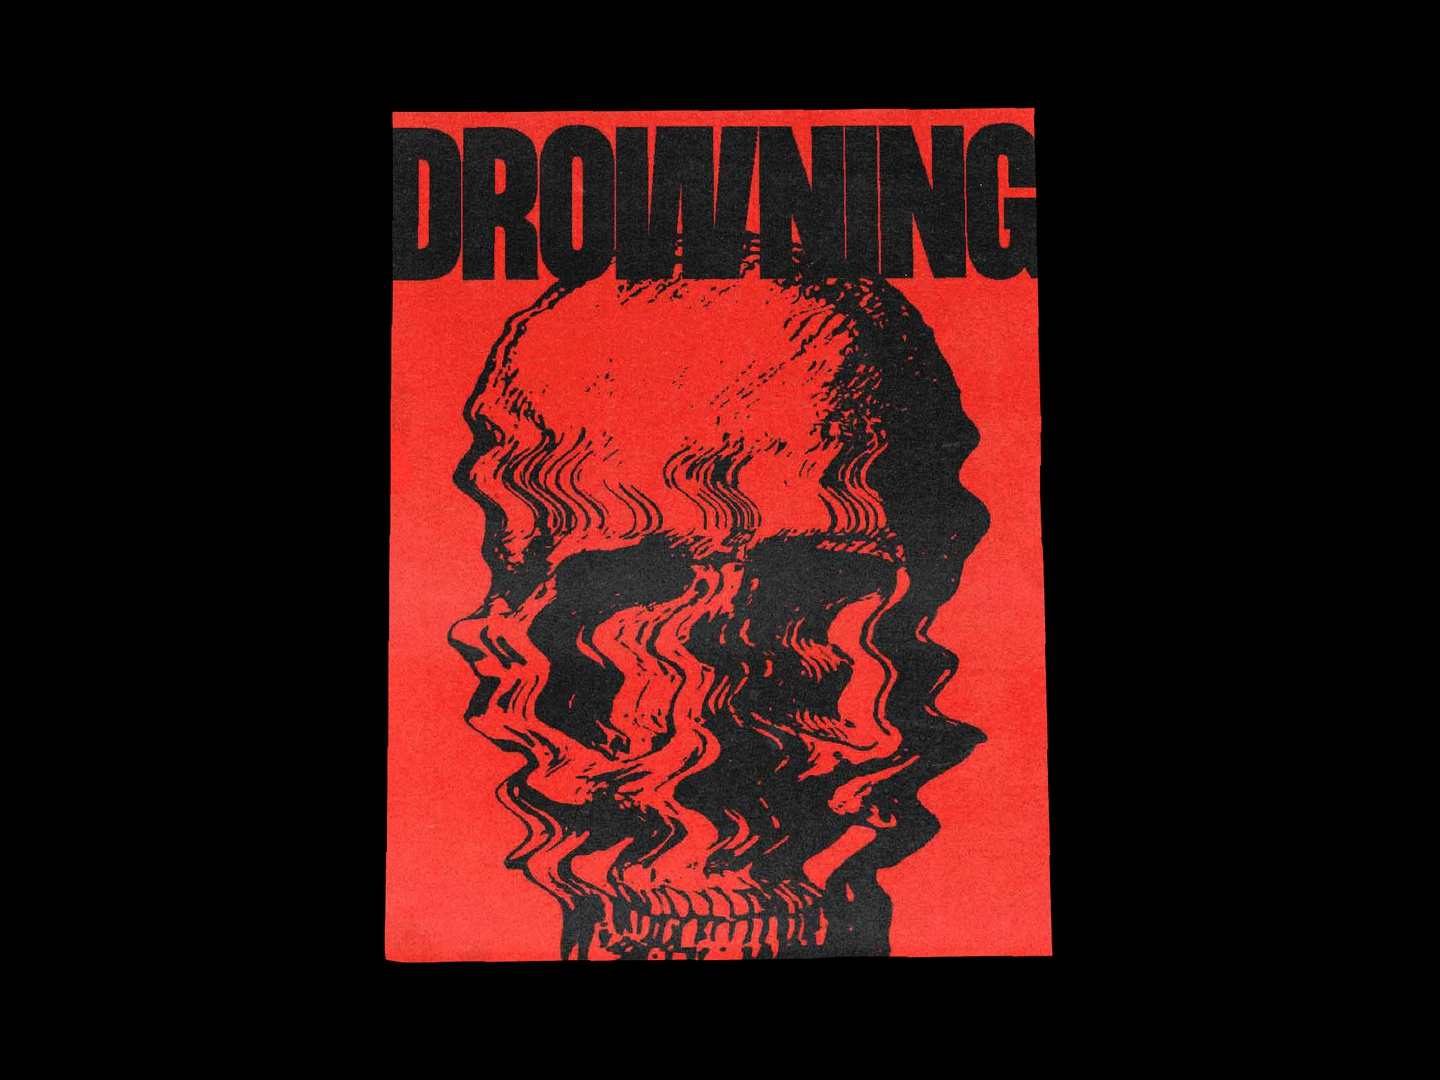 DROWNING — Poster Design red and black 2019 trend skulls poster a day poster art posters poster design poster bold font bold red drowning skull illustration typography type minimal design graphicdesign graphic design